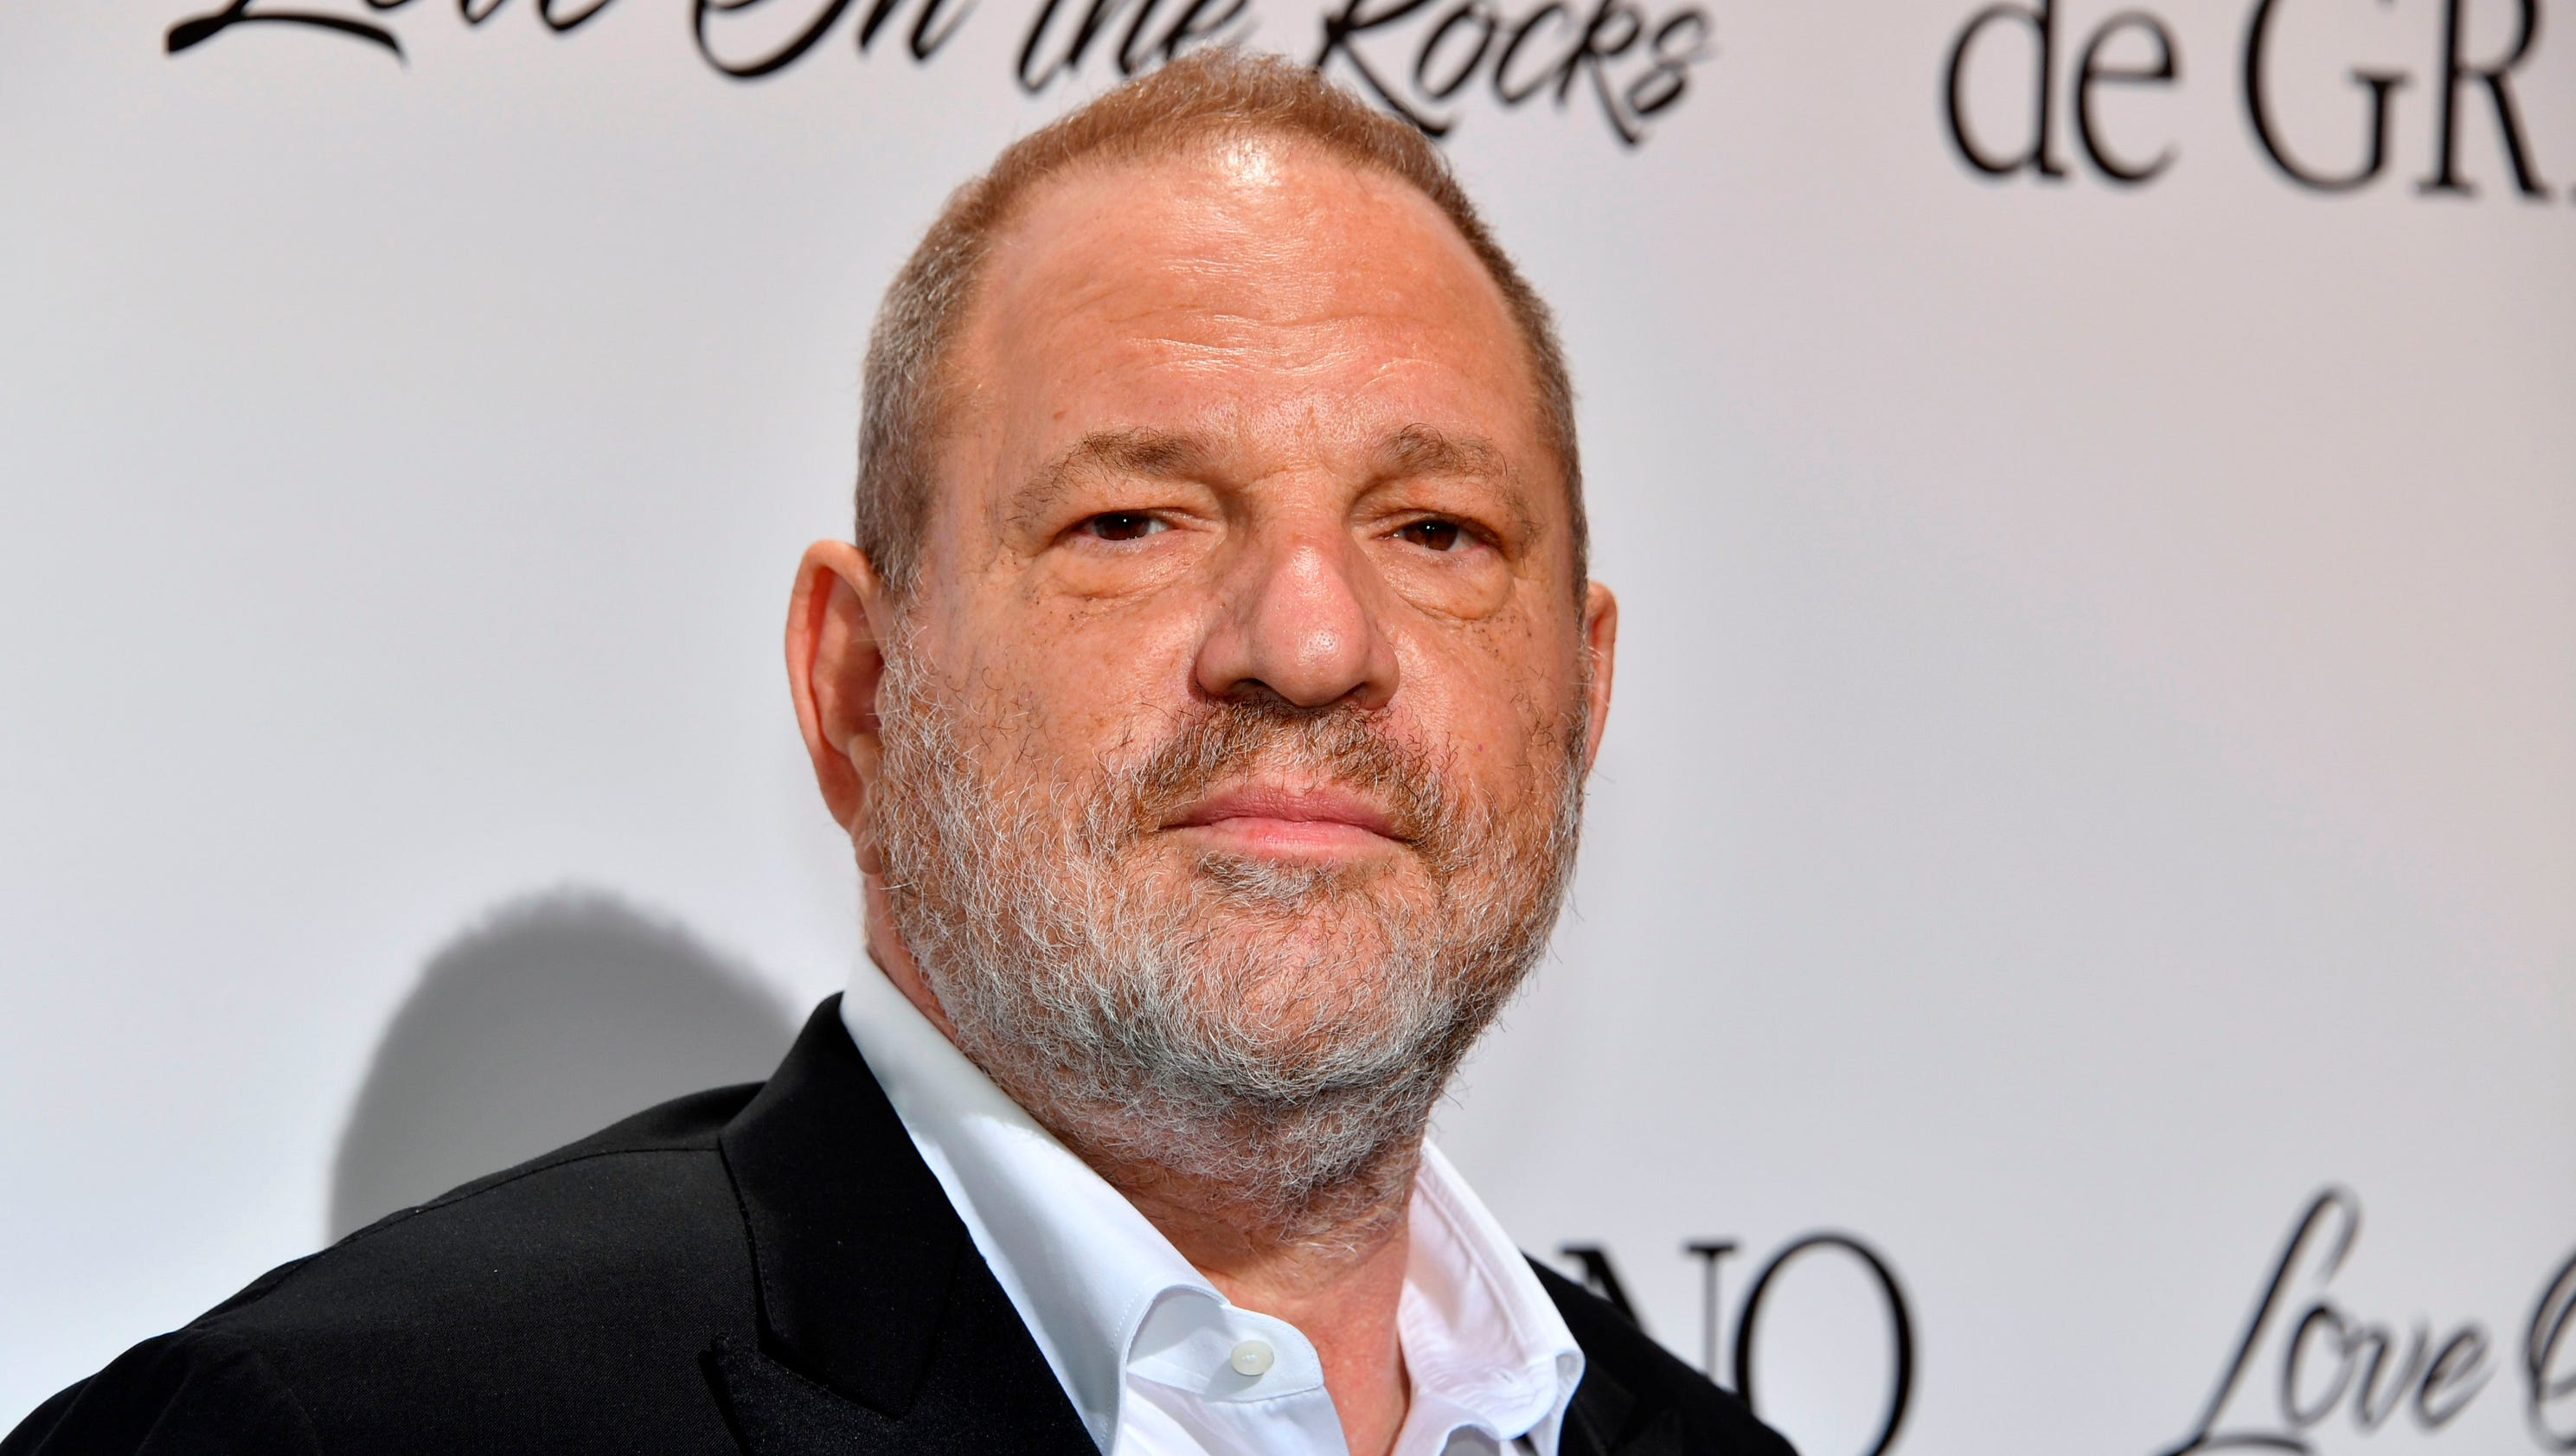 Harvey Weinstein scandal: Total accusers pass 50 women